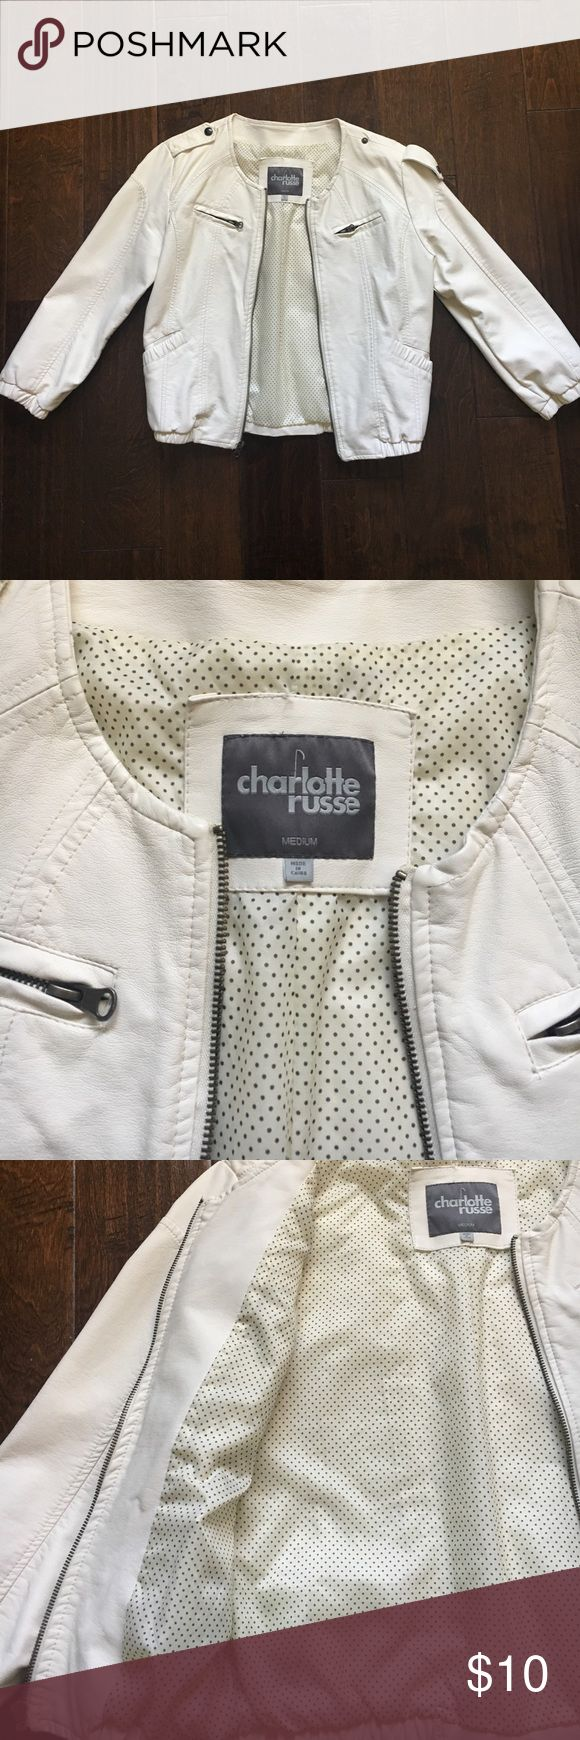 White leather jacket! It is a white leather jacket perfect for a windy day. Very confortable. Worn only once. Charlotte Russe Jackets & Coats